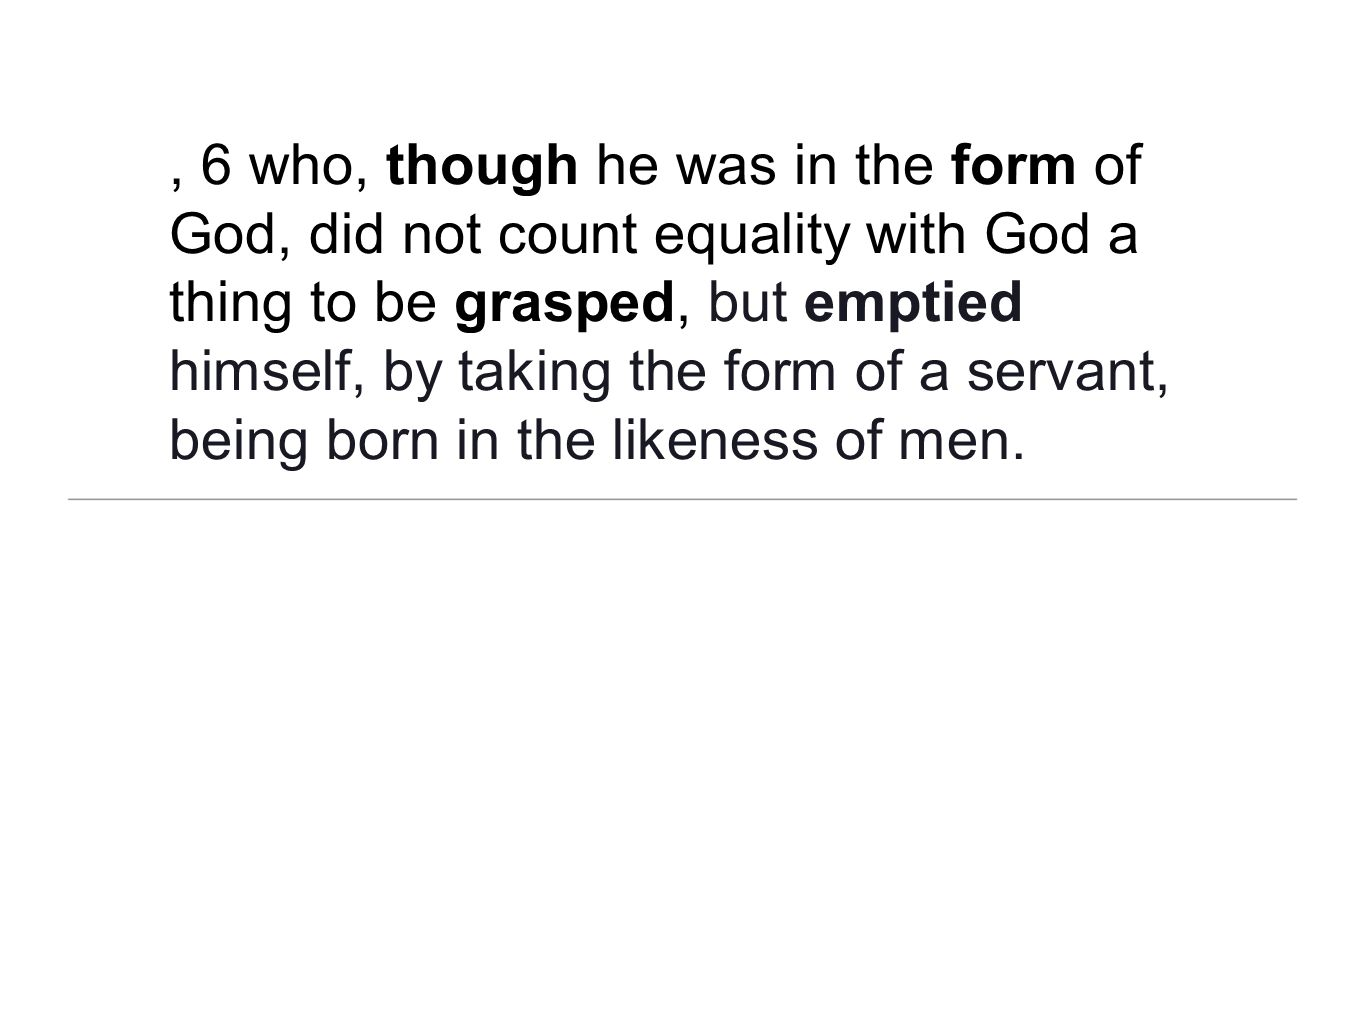 , 6 who, though he was in the form of God, did not count equality with God a thing to be grasped, but emptied himself, by taking the form of a servant, being born in the likeness of men.